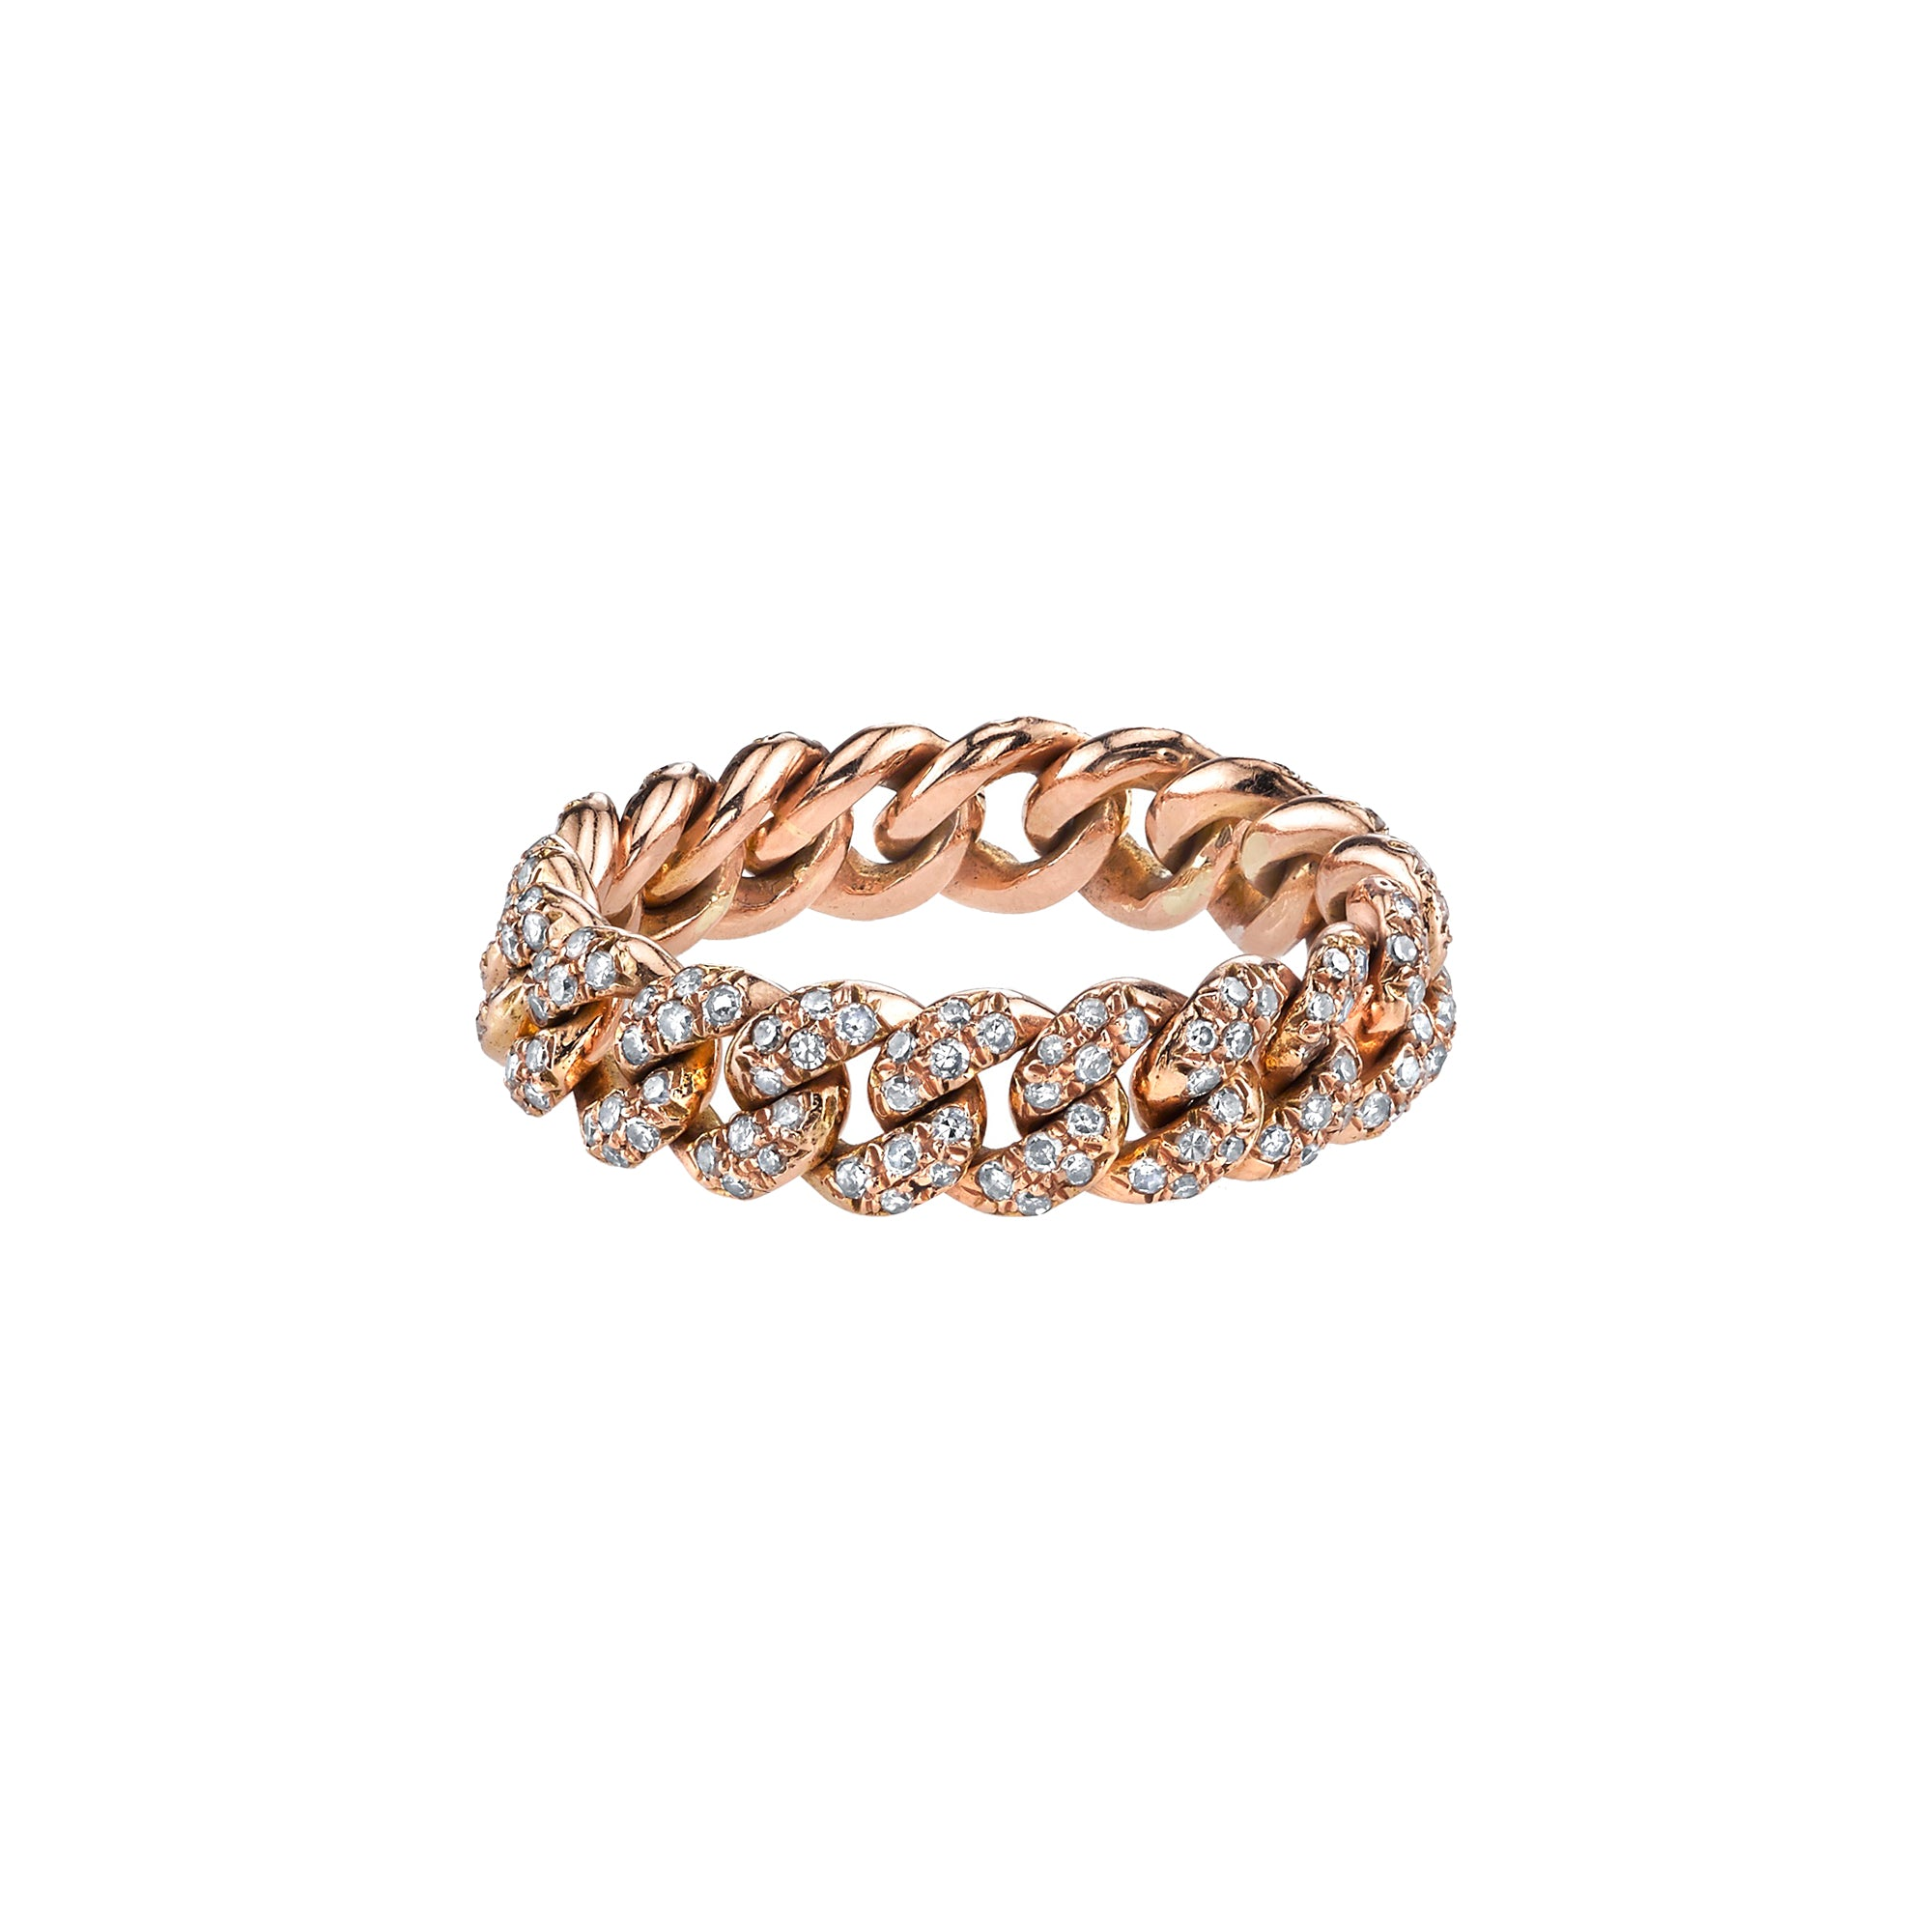 Shay Mini Pave Link Ring - Rose Gold - Rings - Broken English Jewelry